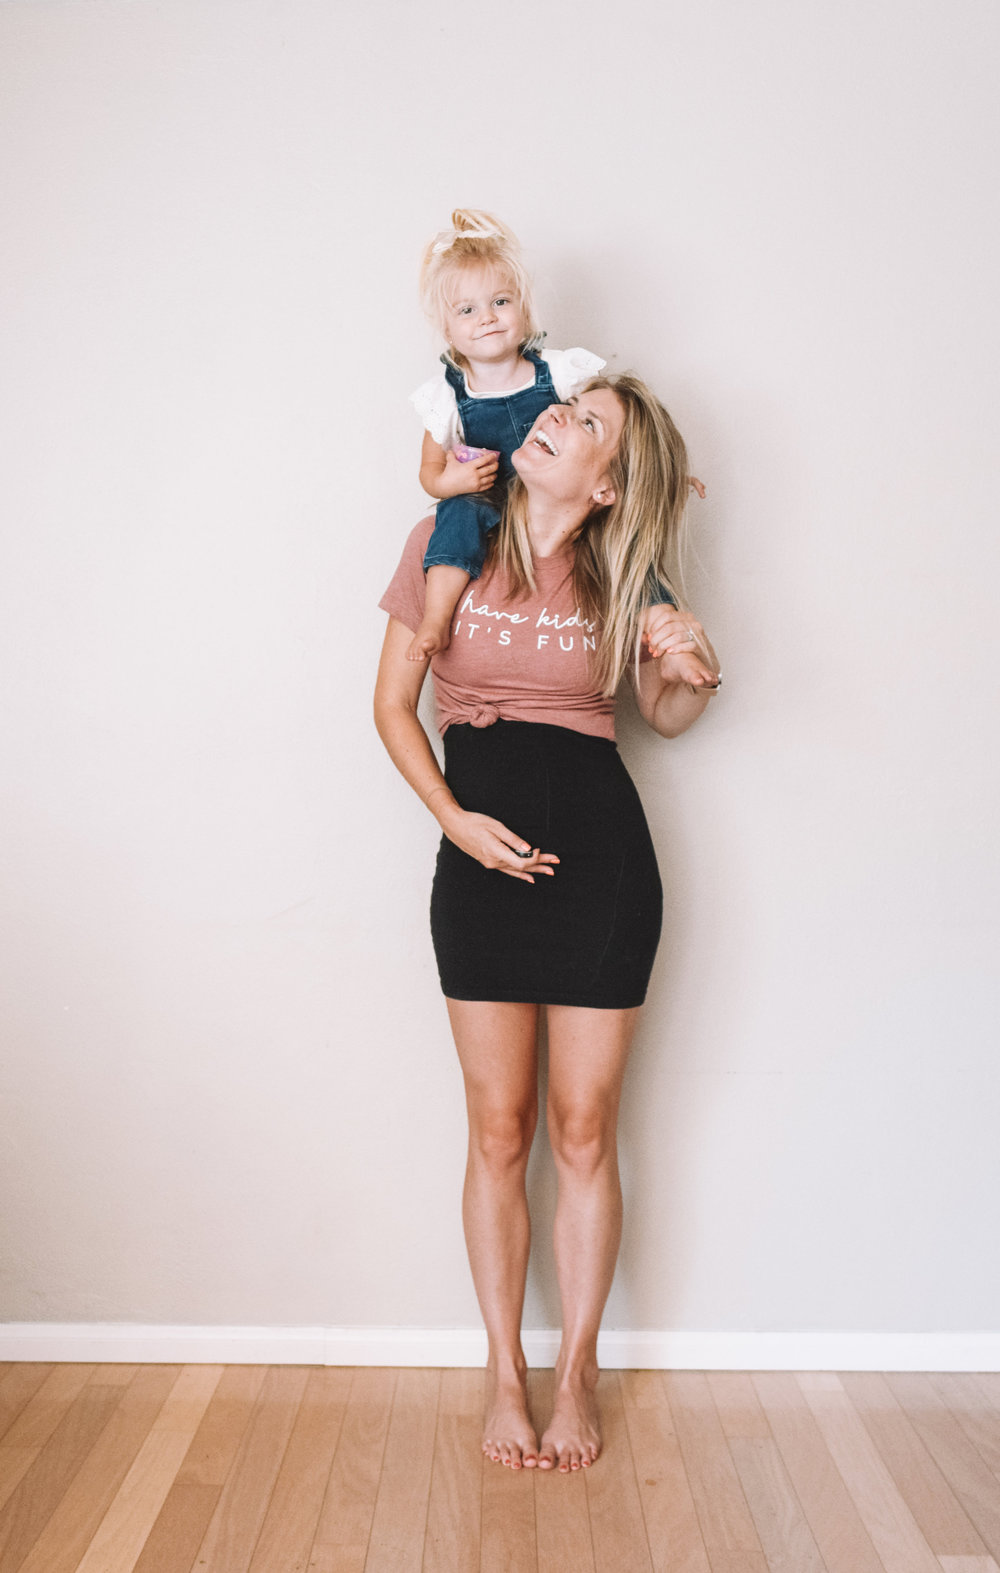 Funny Pregnancy Shirts - Cute Weekly Pregnancy Photos - The Overwhelmed Mommy Blogger